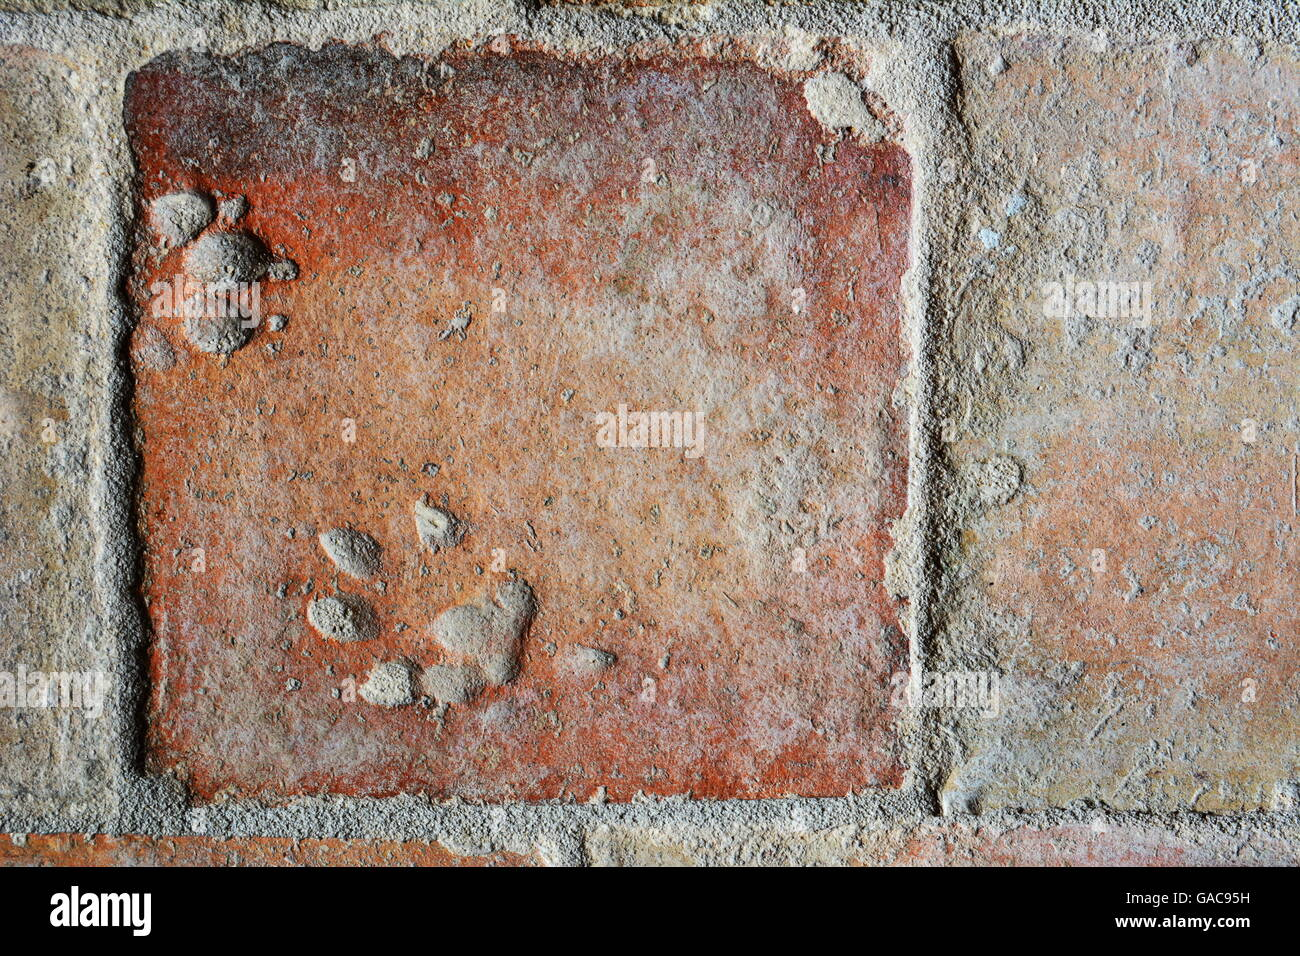 Old terracotta floor tile with imprints of dogs paws stock photo old terracotta floor tile with imprints of dogs paws dailygadgetfo Choice Image